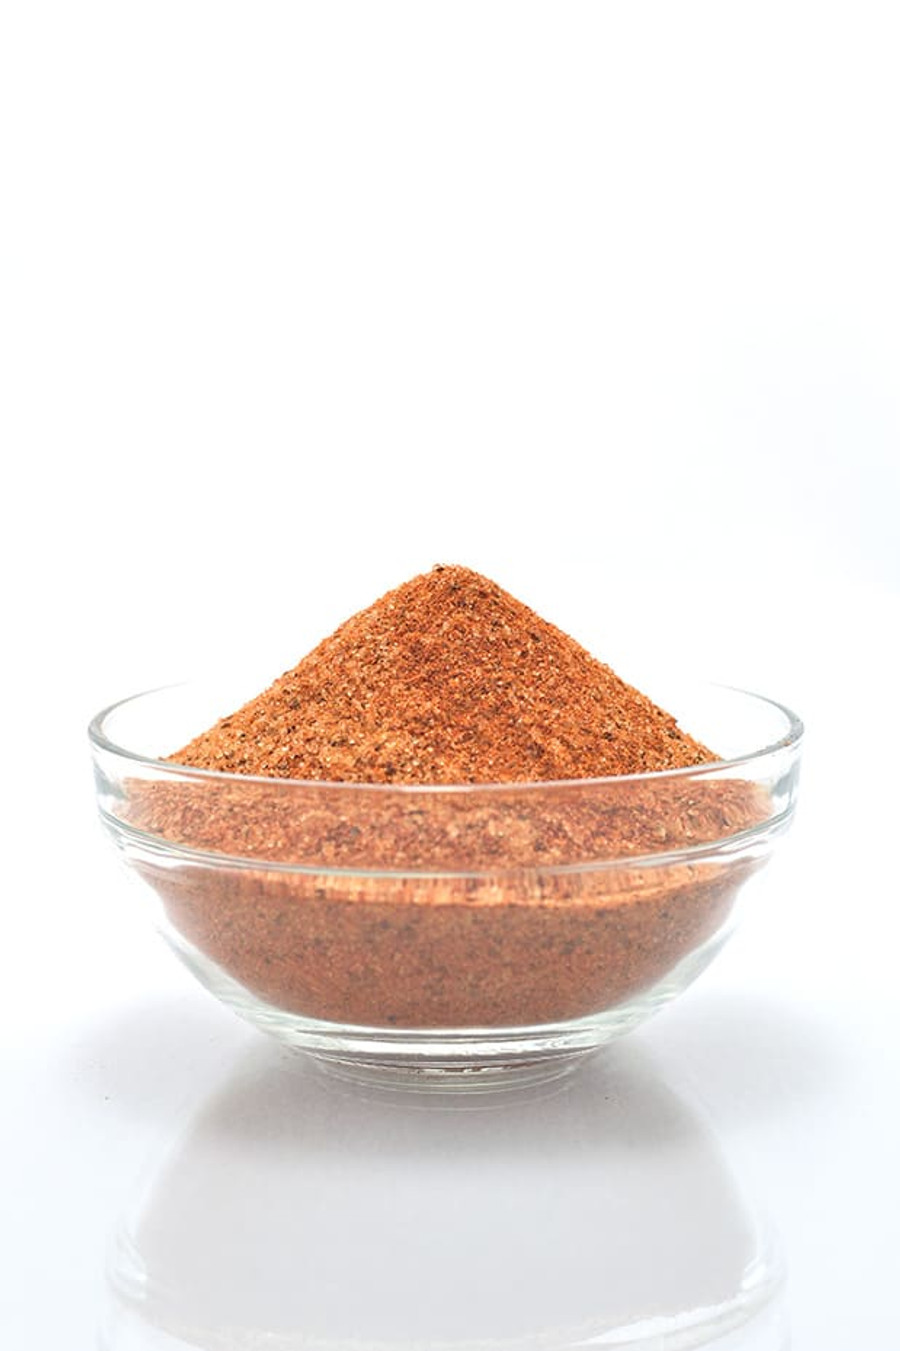 Secret Weapon Pork & Chicken Rub available online at Pepper Explosion